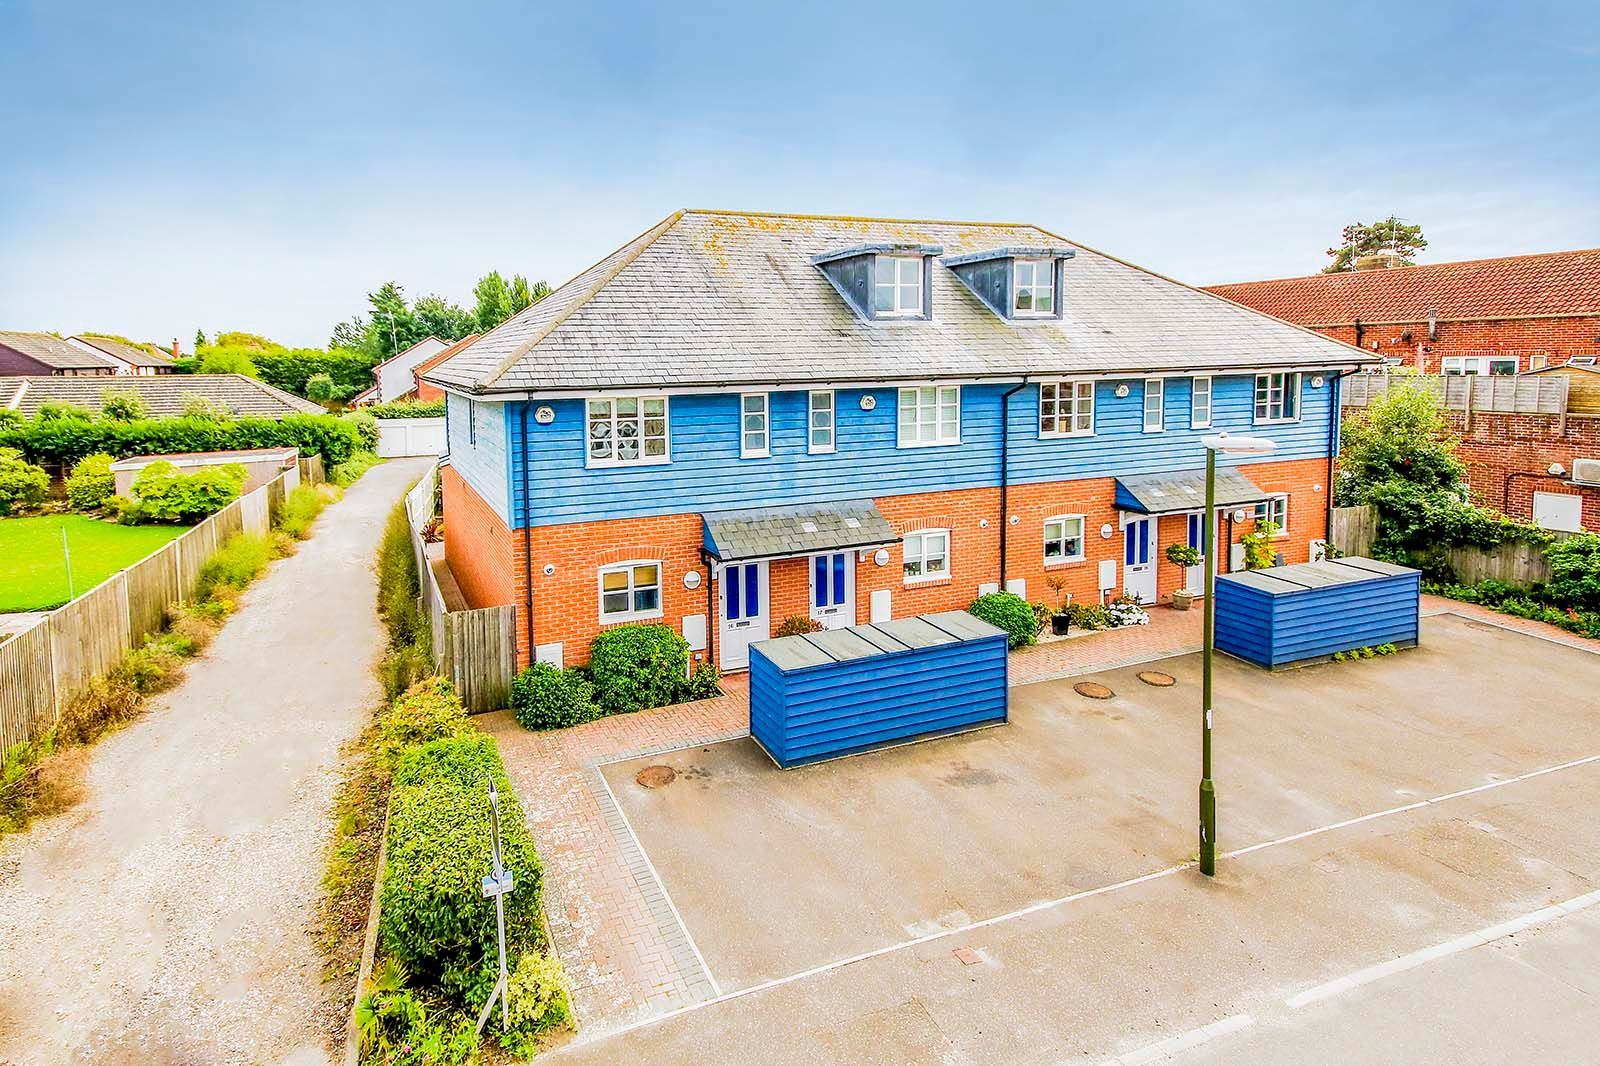 3 bed house to rent in Beechlands Close - Property Image 1